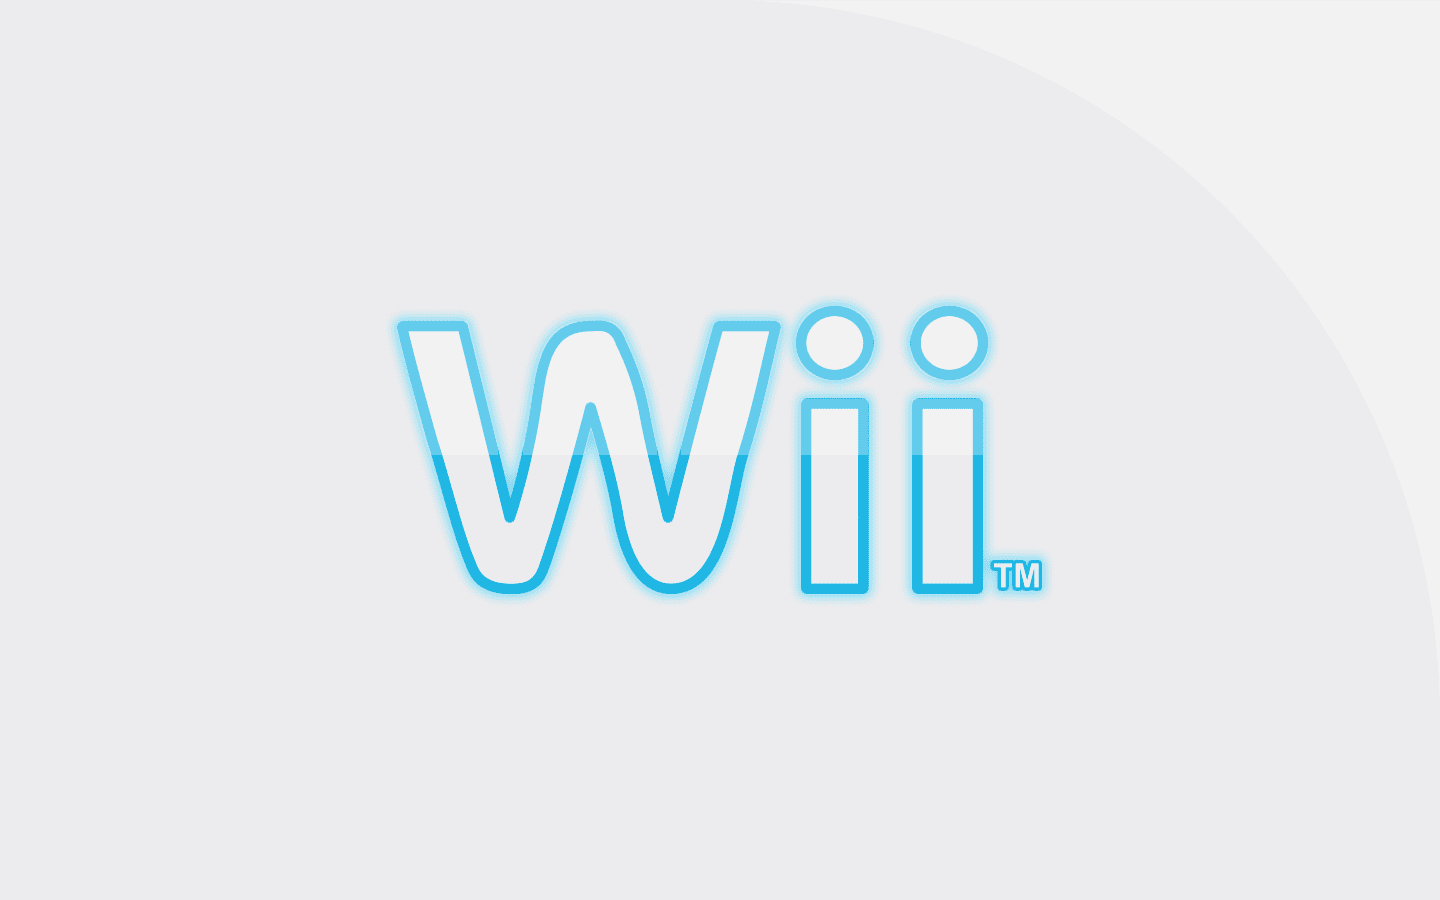 Top 5 Third-Party Nintendo Wii Games of All Time